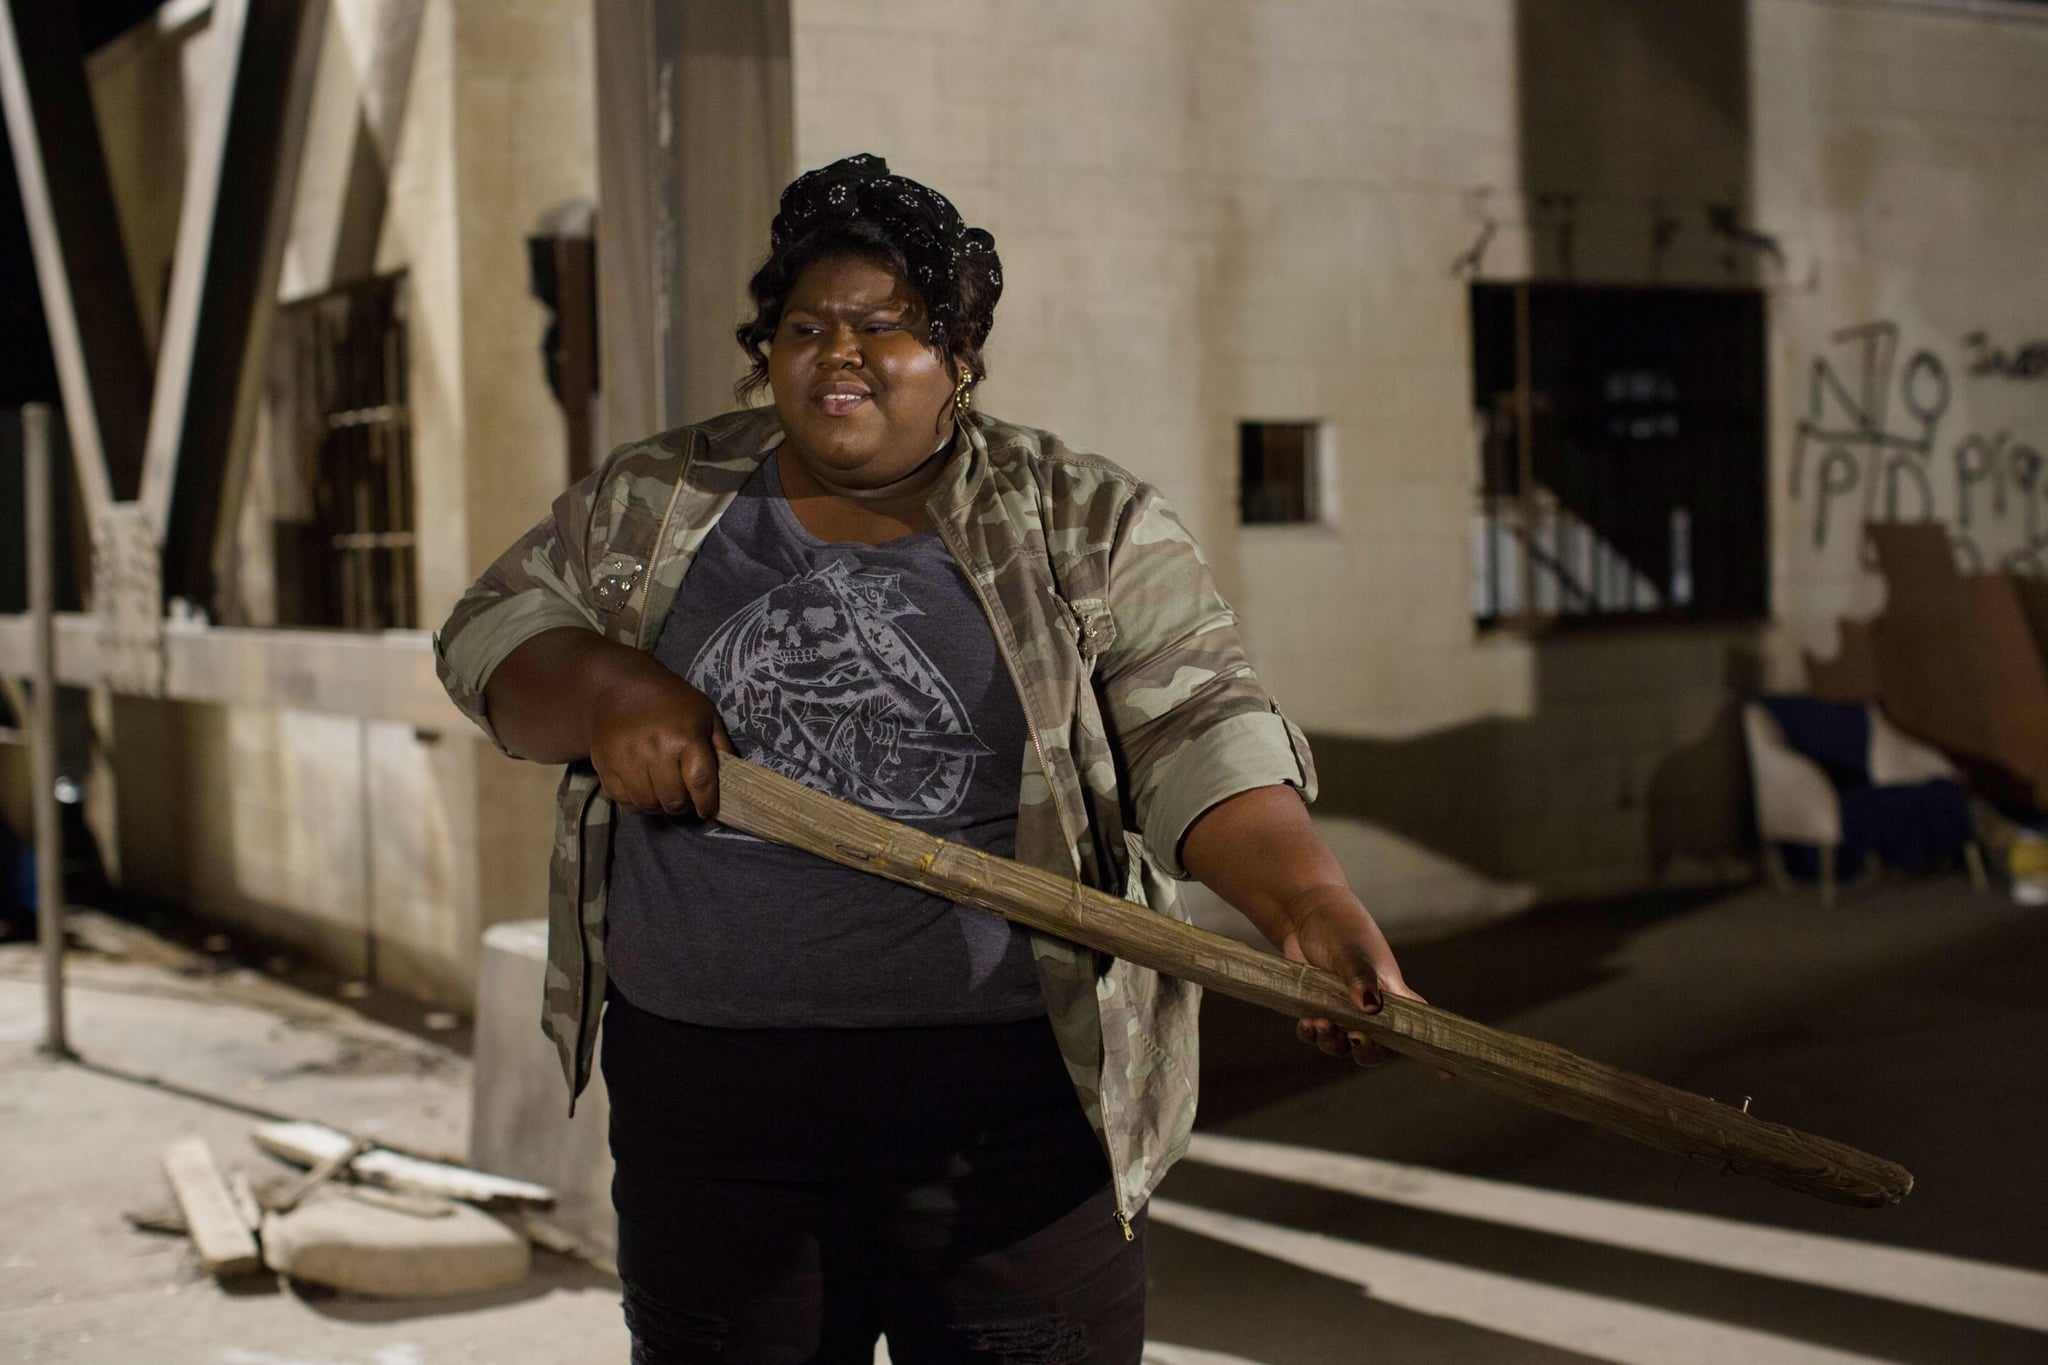 AMERICAN HORROR STORY: COVEN, Gabourey Sidibe in 'The Sacred Taking' (Season 3, Episode 8, aired December 4, 2013). ph: Michele K. Short/FX Networks/courtesy Everett Collection